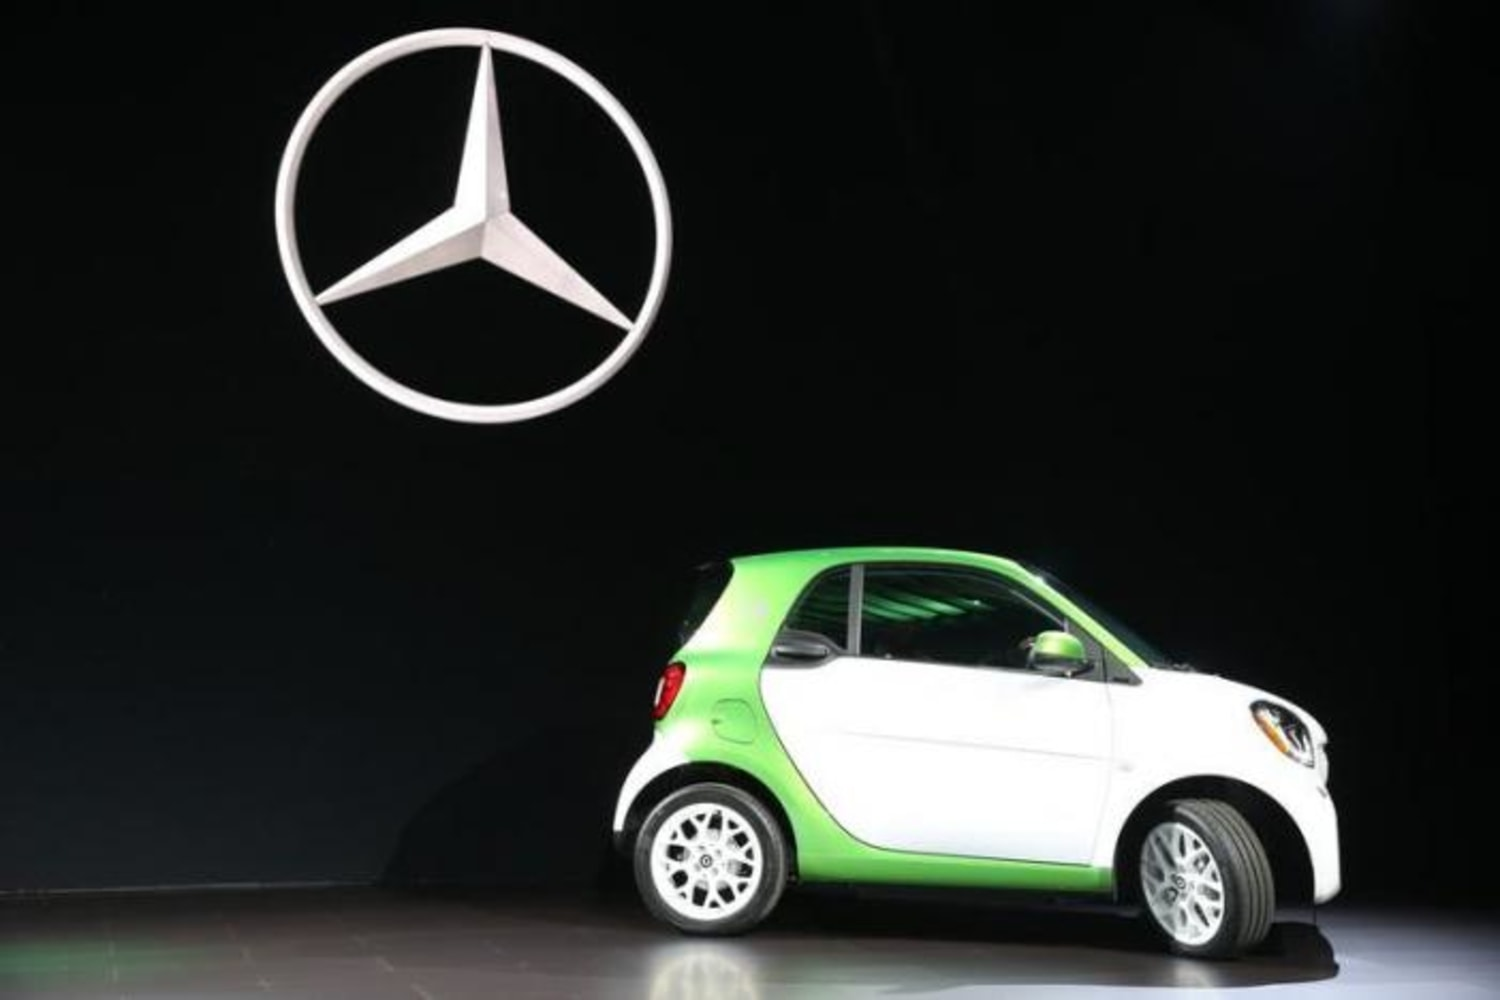 Daimlers Smart Cars Are Going AllElectric in US Market  NBC News